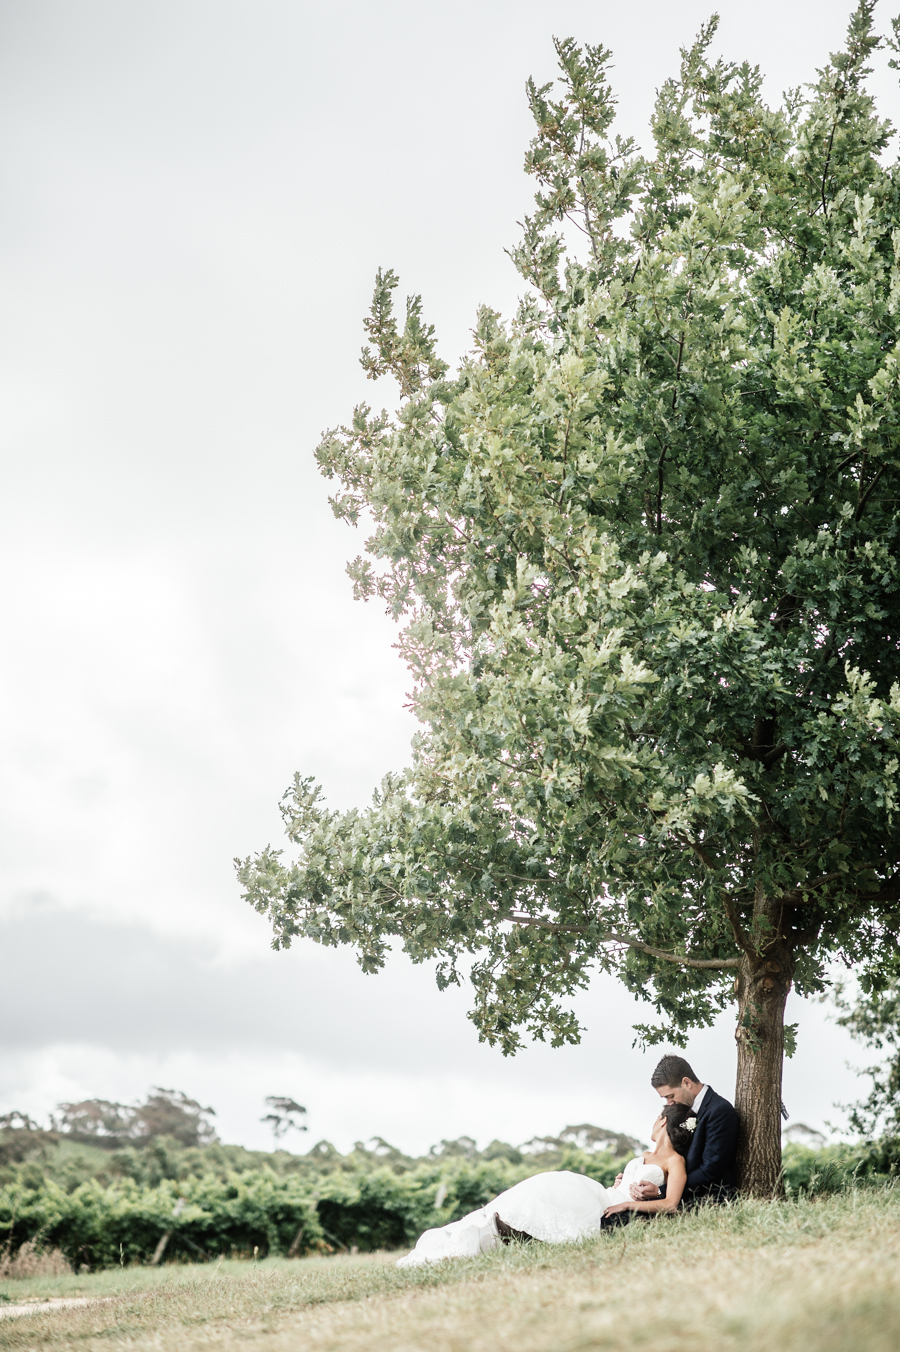 Kate & Sam were married in the Adelaide Hills